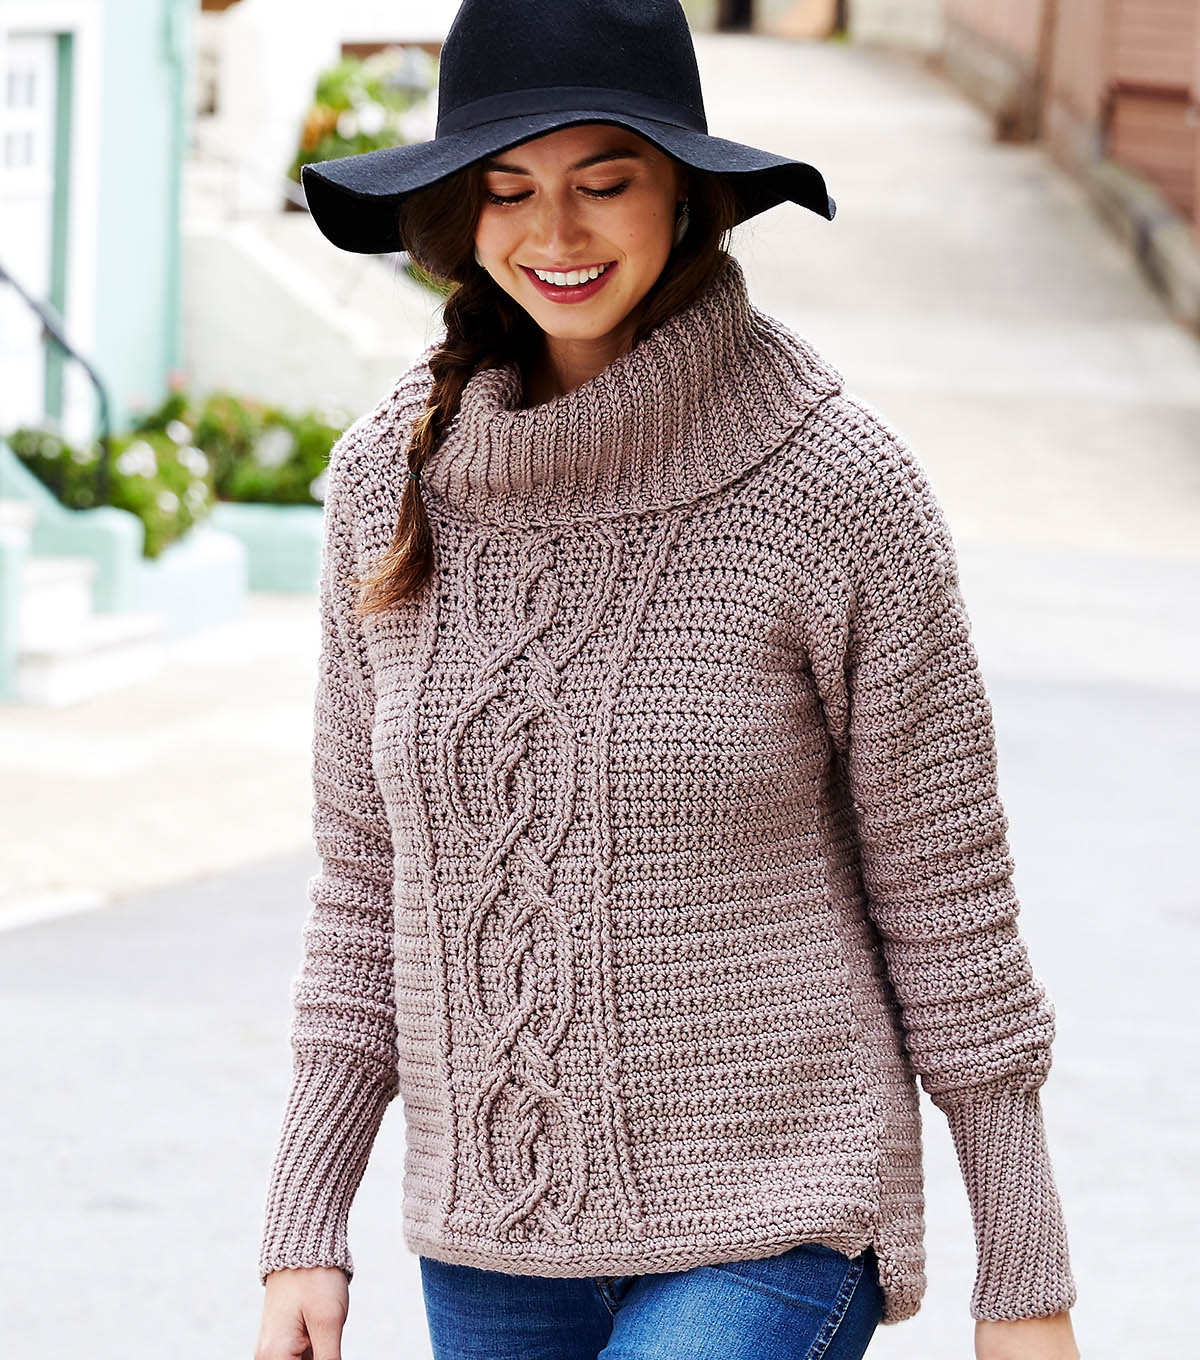 How To Crochet An Entwined Chic Cable Sweater Joann